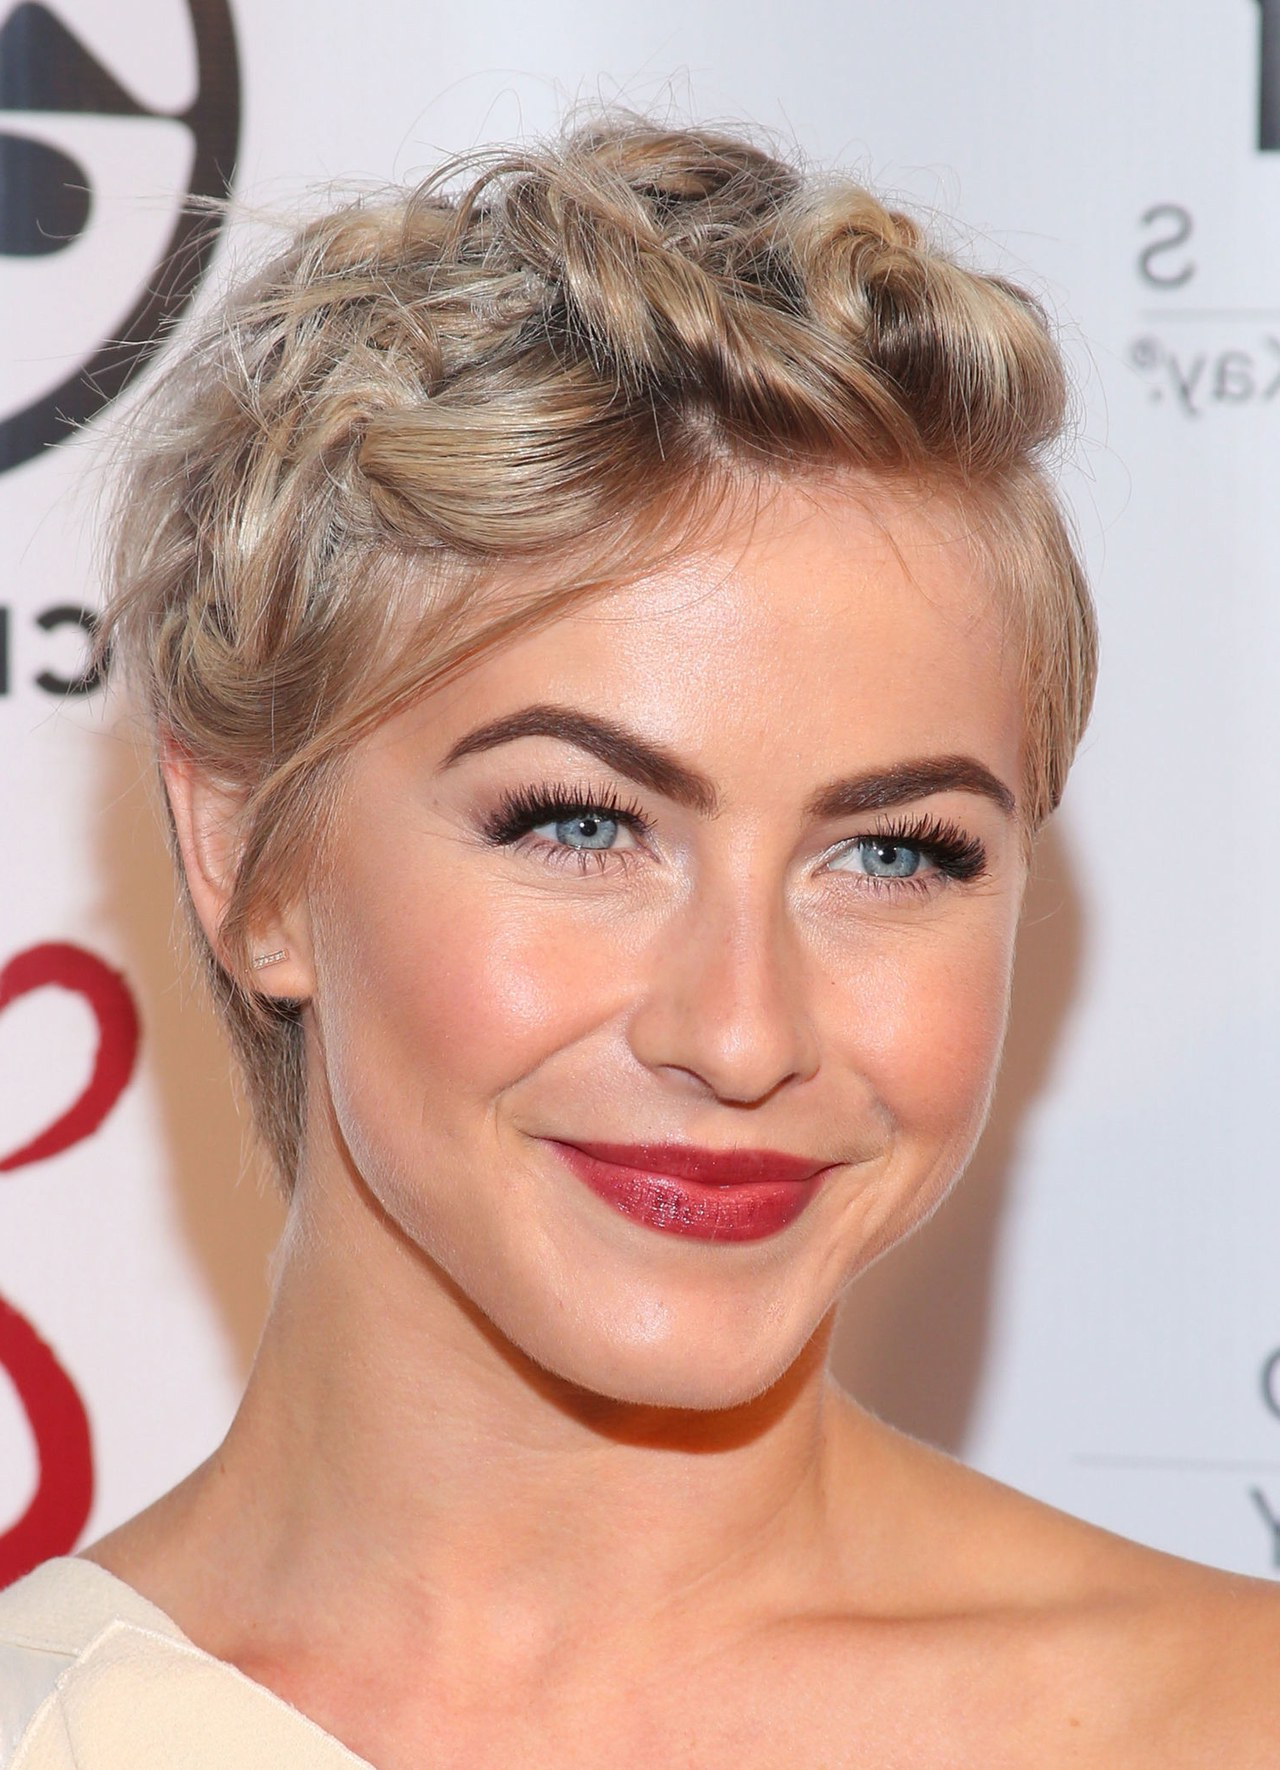 Julianne Hough Shows A Cute Hairstyle Option For Short Hair For in Cute Hairstyles For Short Hair For A Wedding